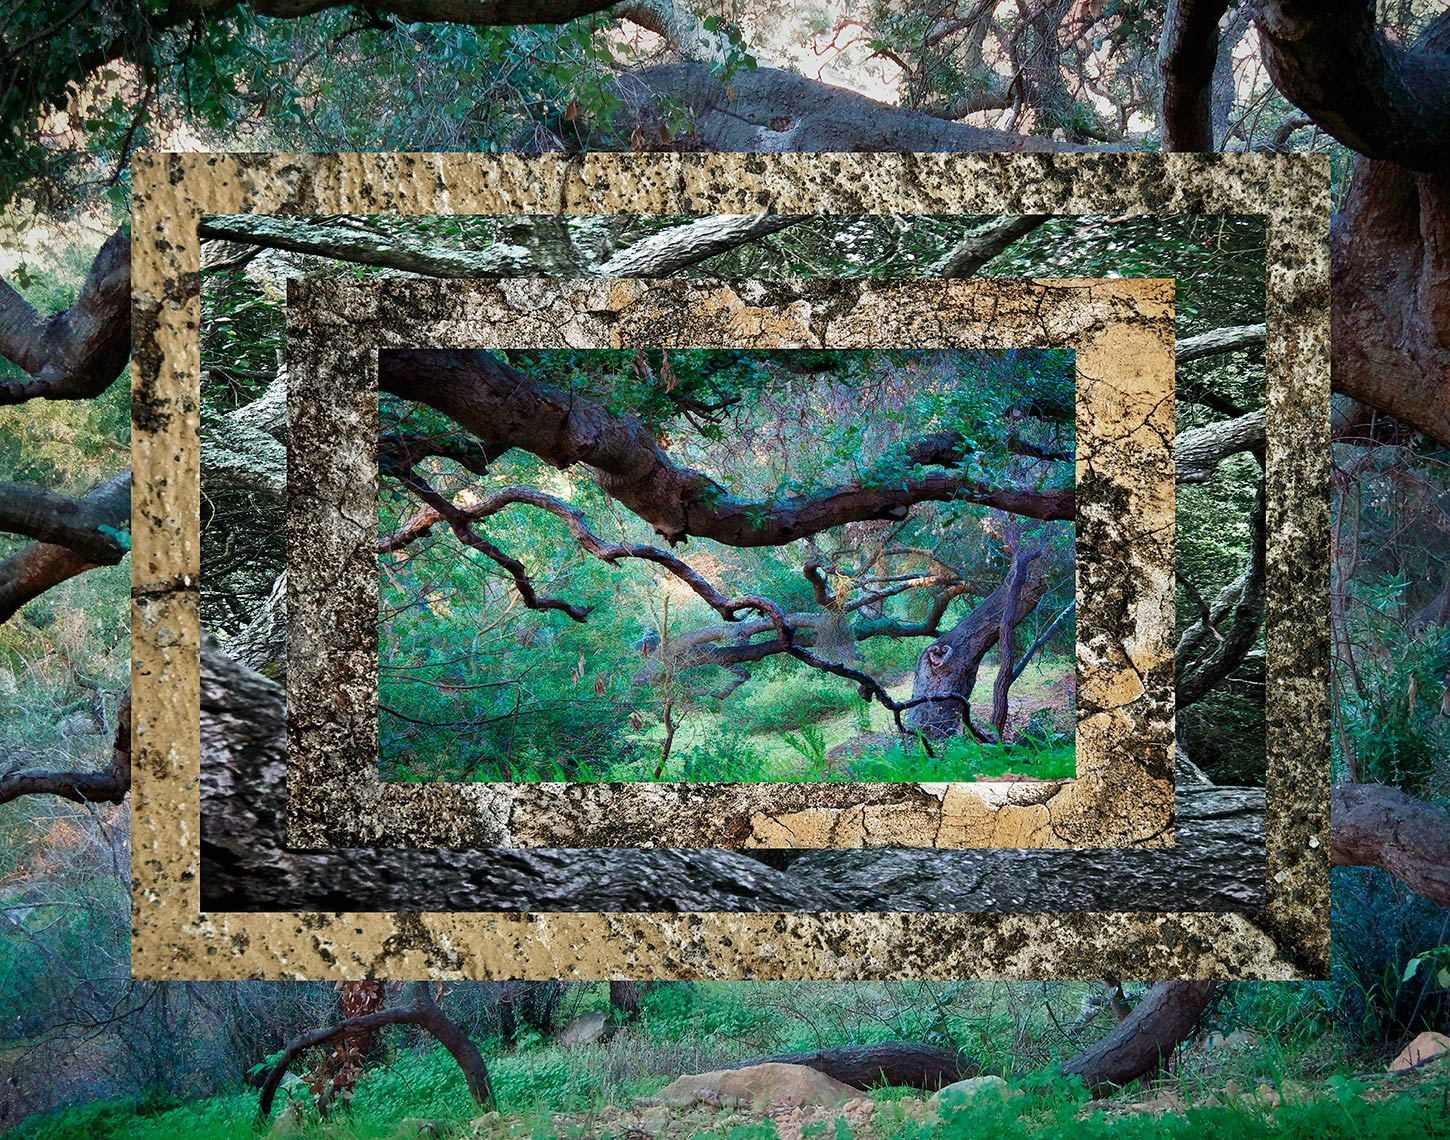 davidhoptman_photo-fine-art-FRAME3bstblrbQ